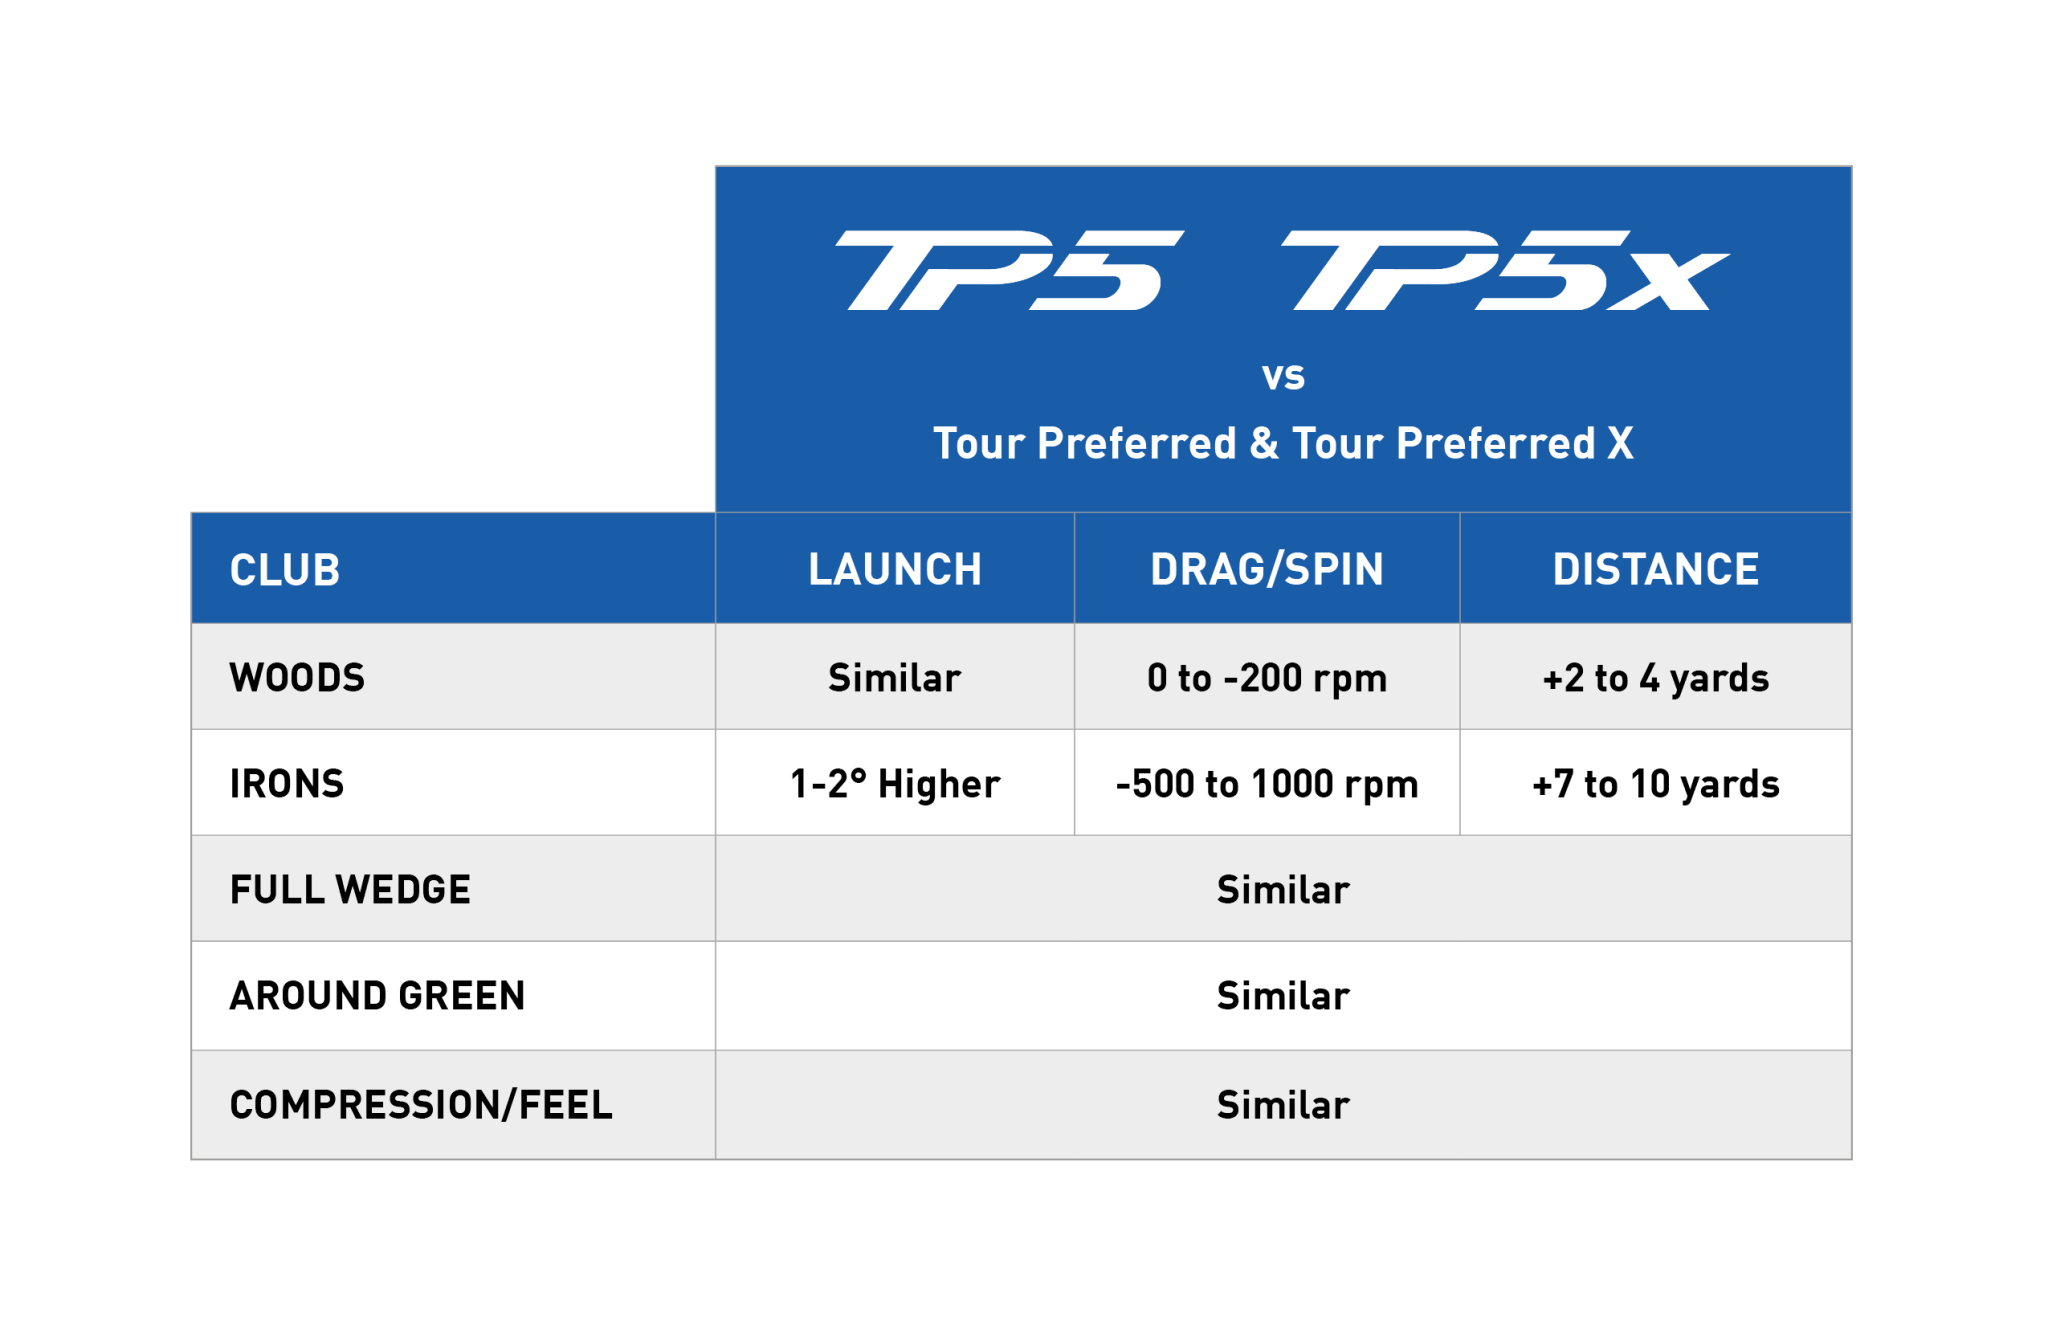 TaylorMade TP5 stats cont